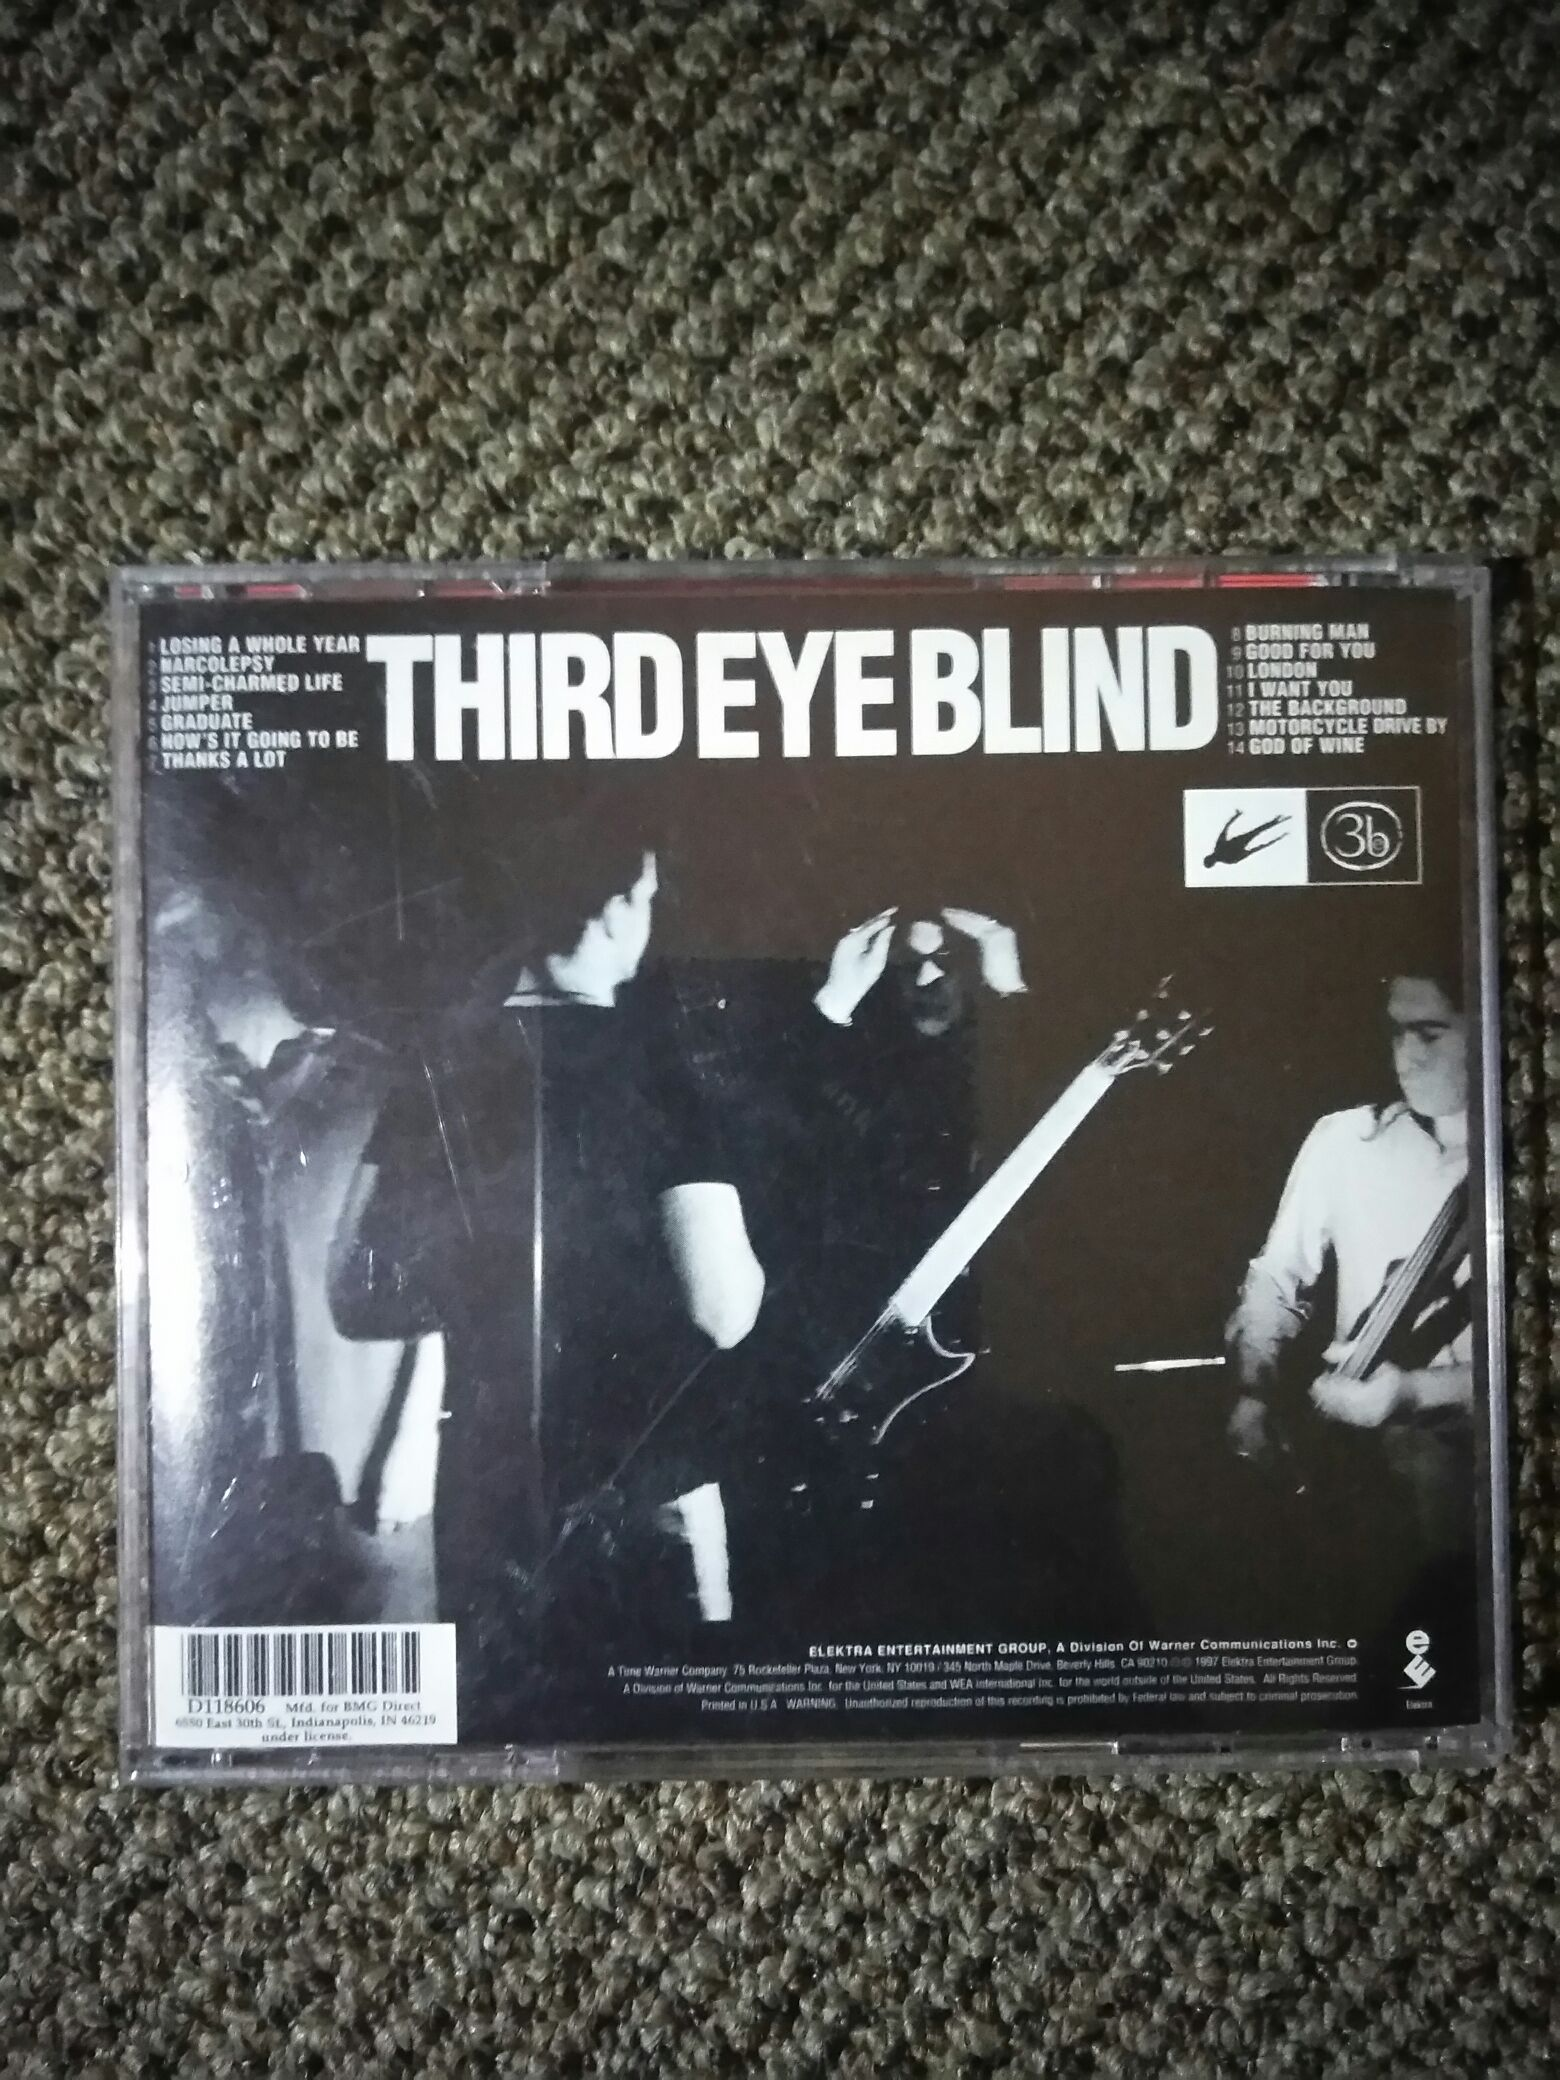 Third Eye Blind Music - Third Eye Blind (CD) back image (back cover, second image)